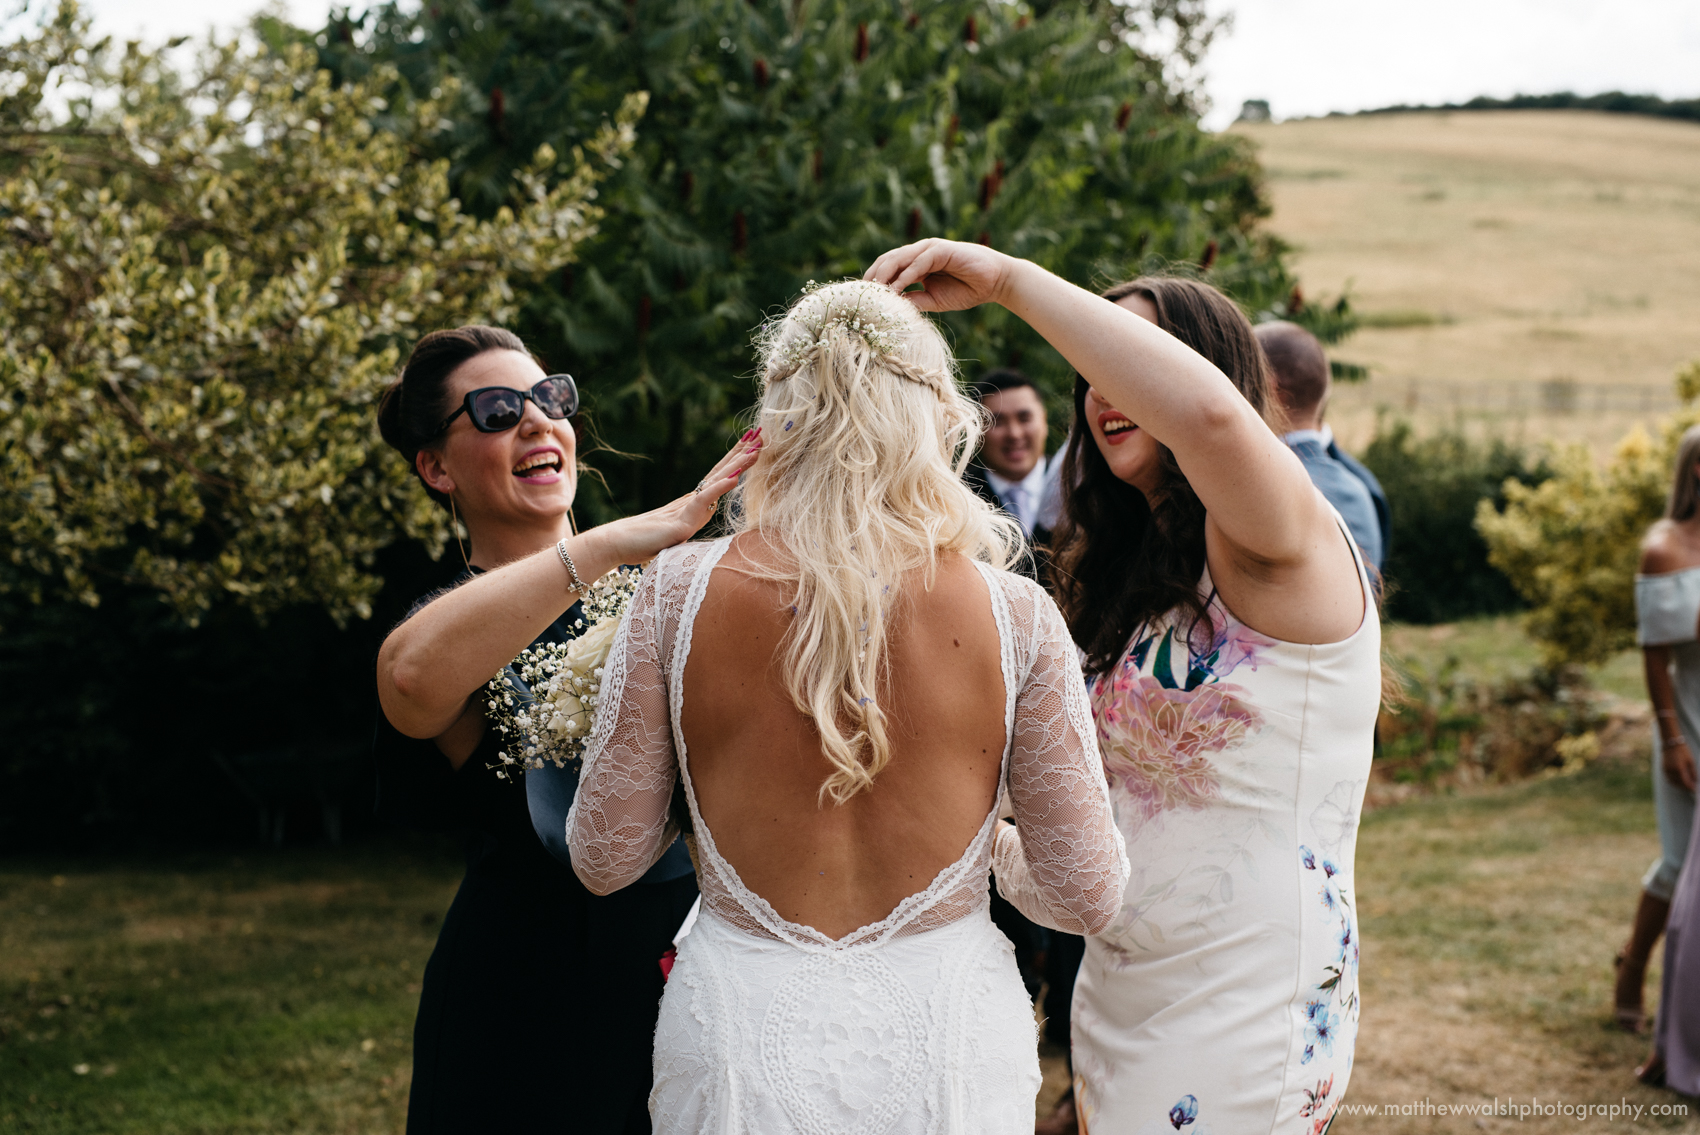 Friends of the bride help remove confetti from her hair